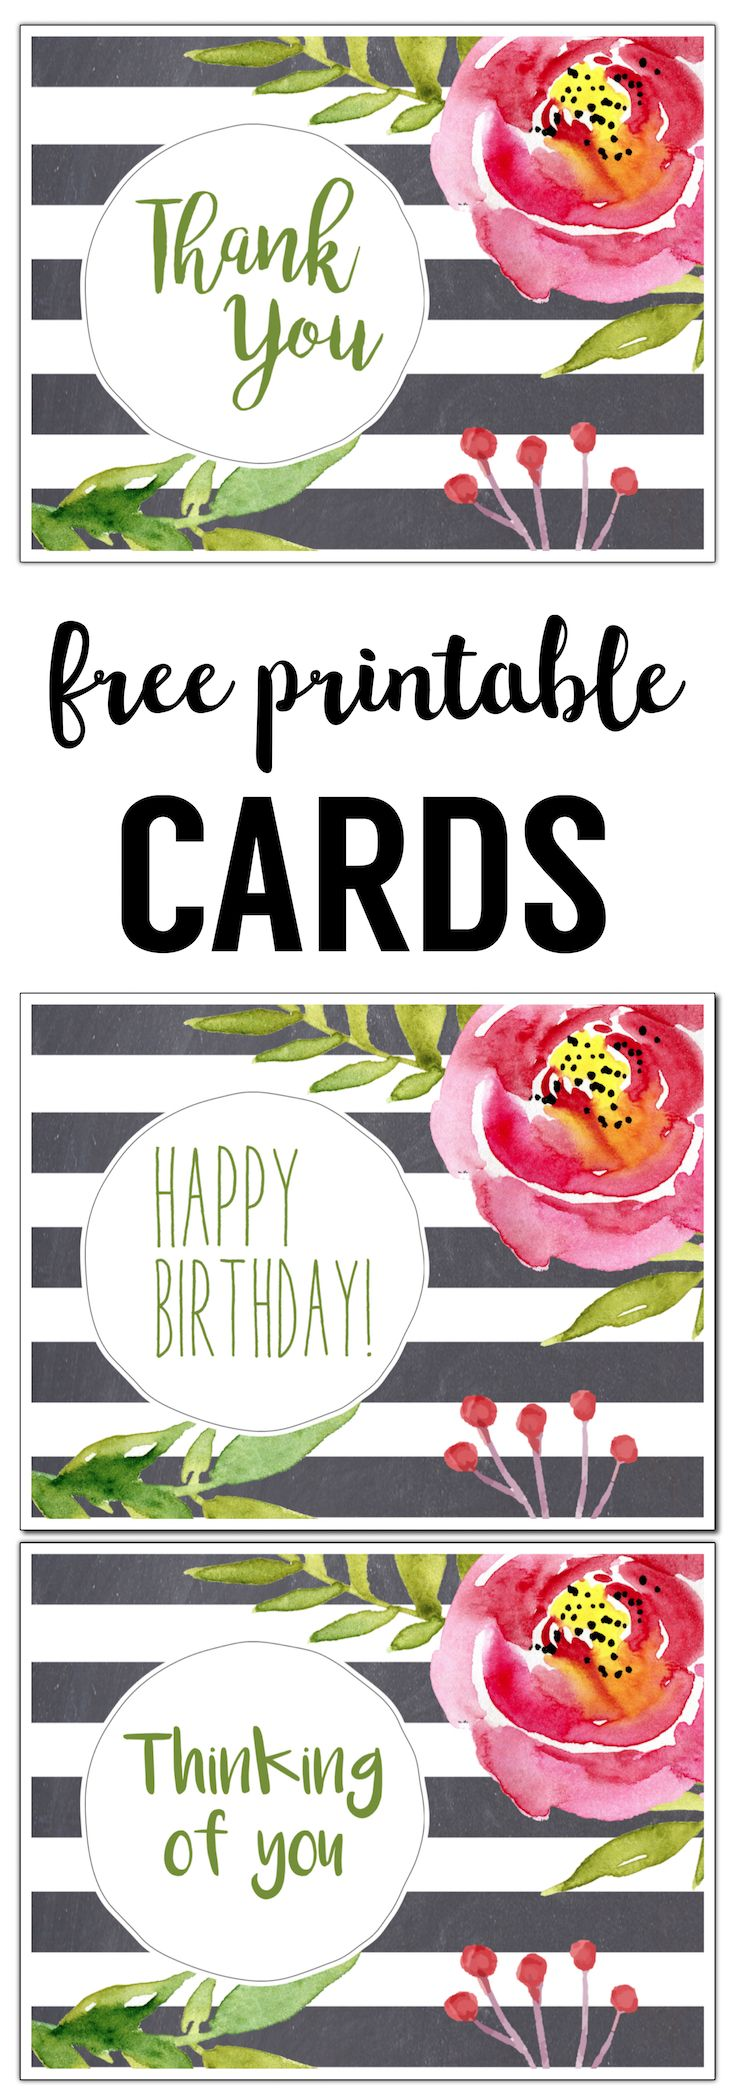 Free Printable Greeting Cards Thank You Thinking Of You Birthday Paper Trail Design Free Printable Birthday Cards Free Printable Greeting Cards Printable Greeting Cards Thinking of you card template